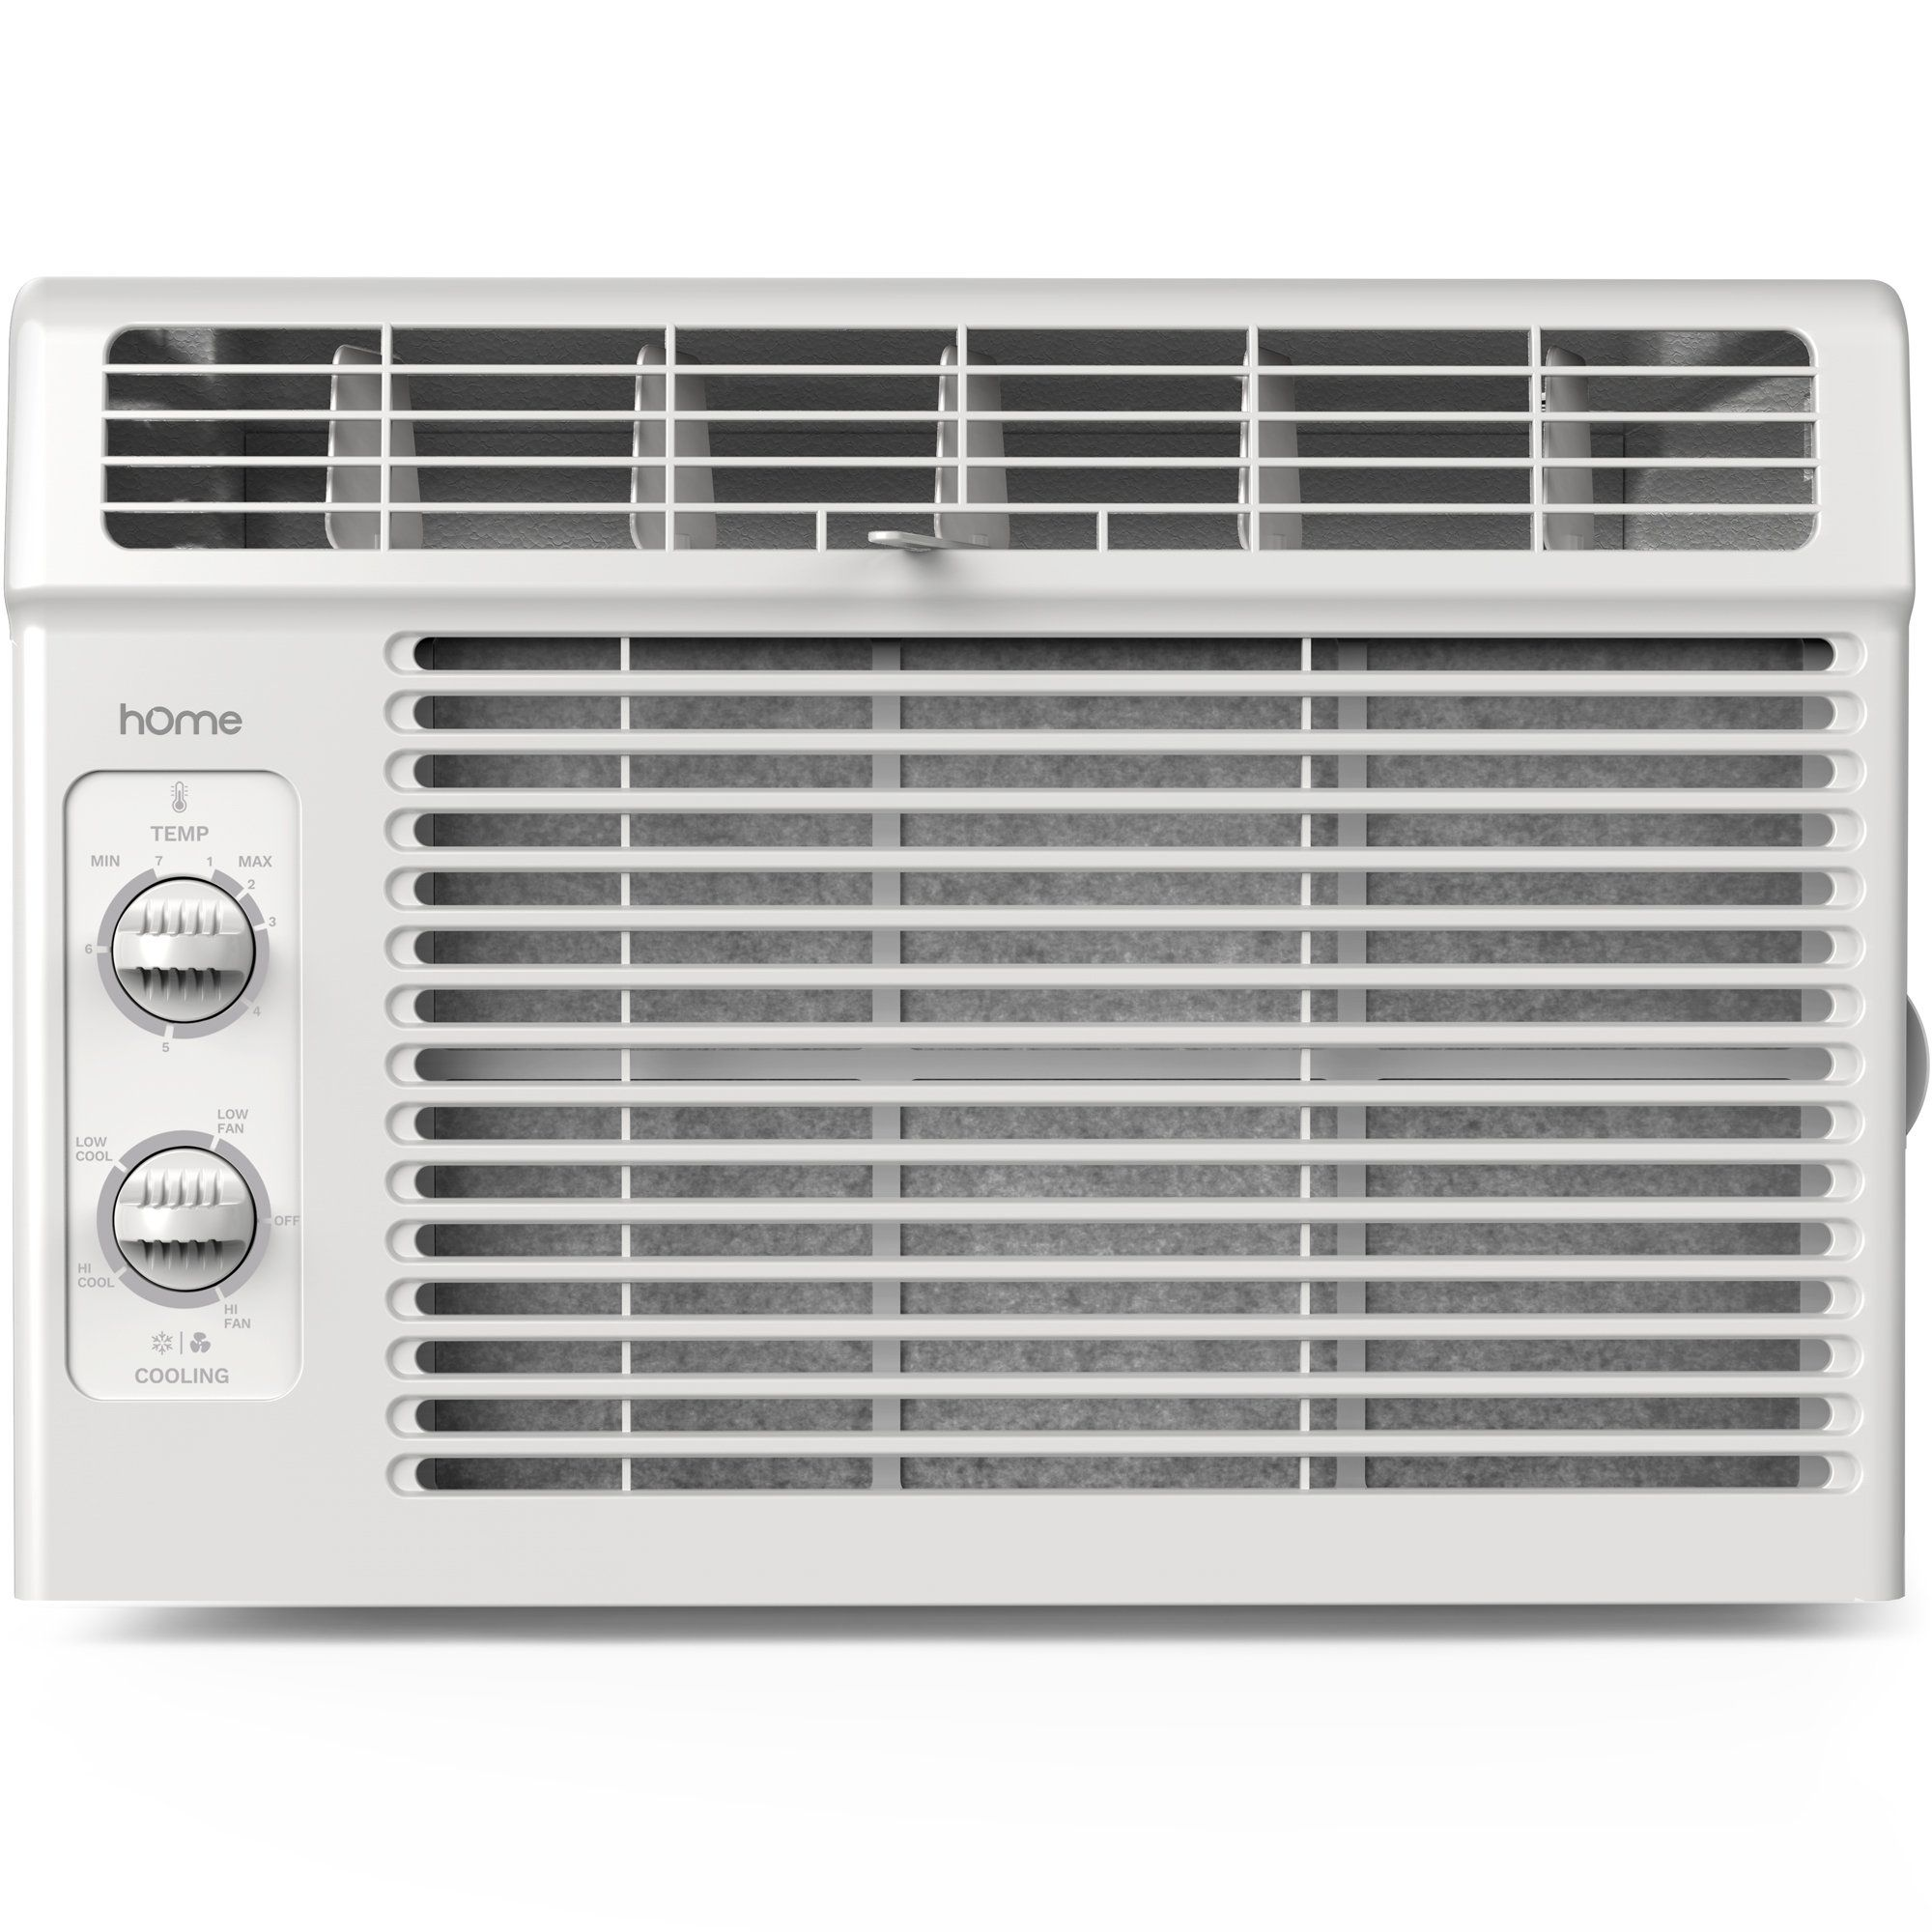 hOme 5000 BTU Window Mounted Air Conditioner - Compact 7-speed ...